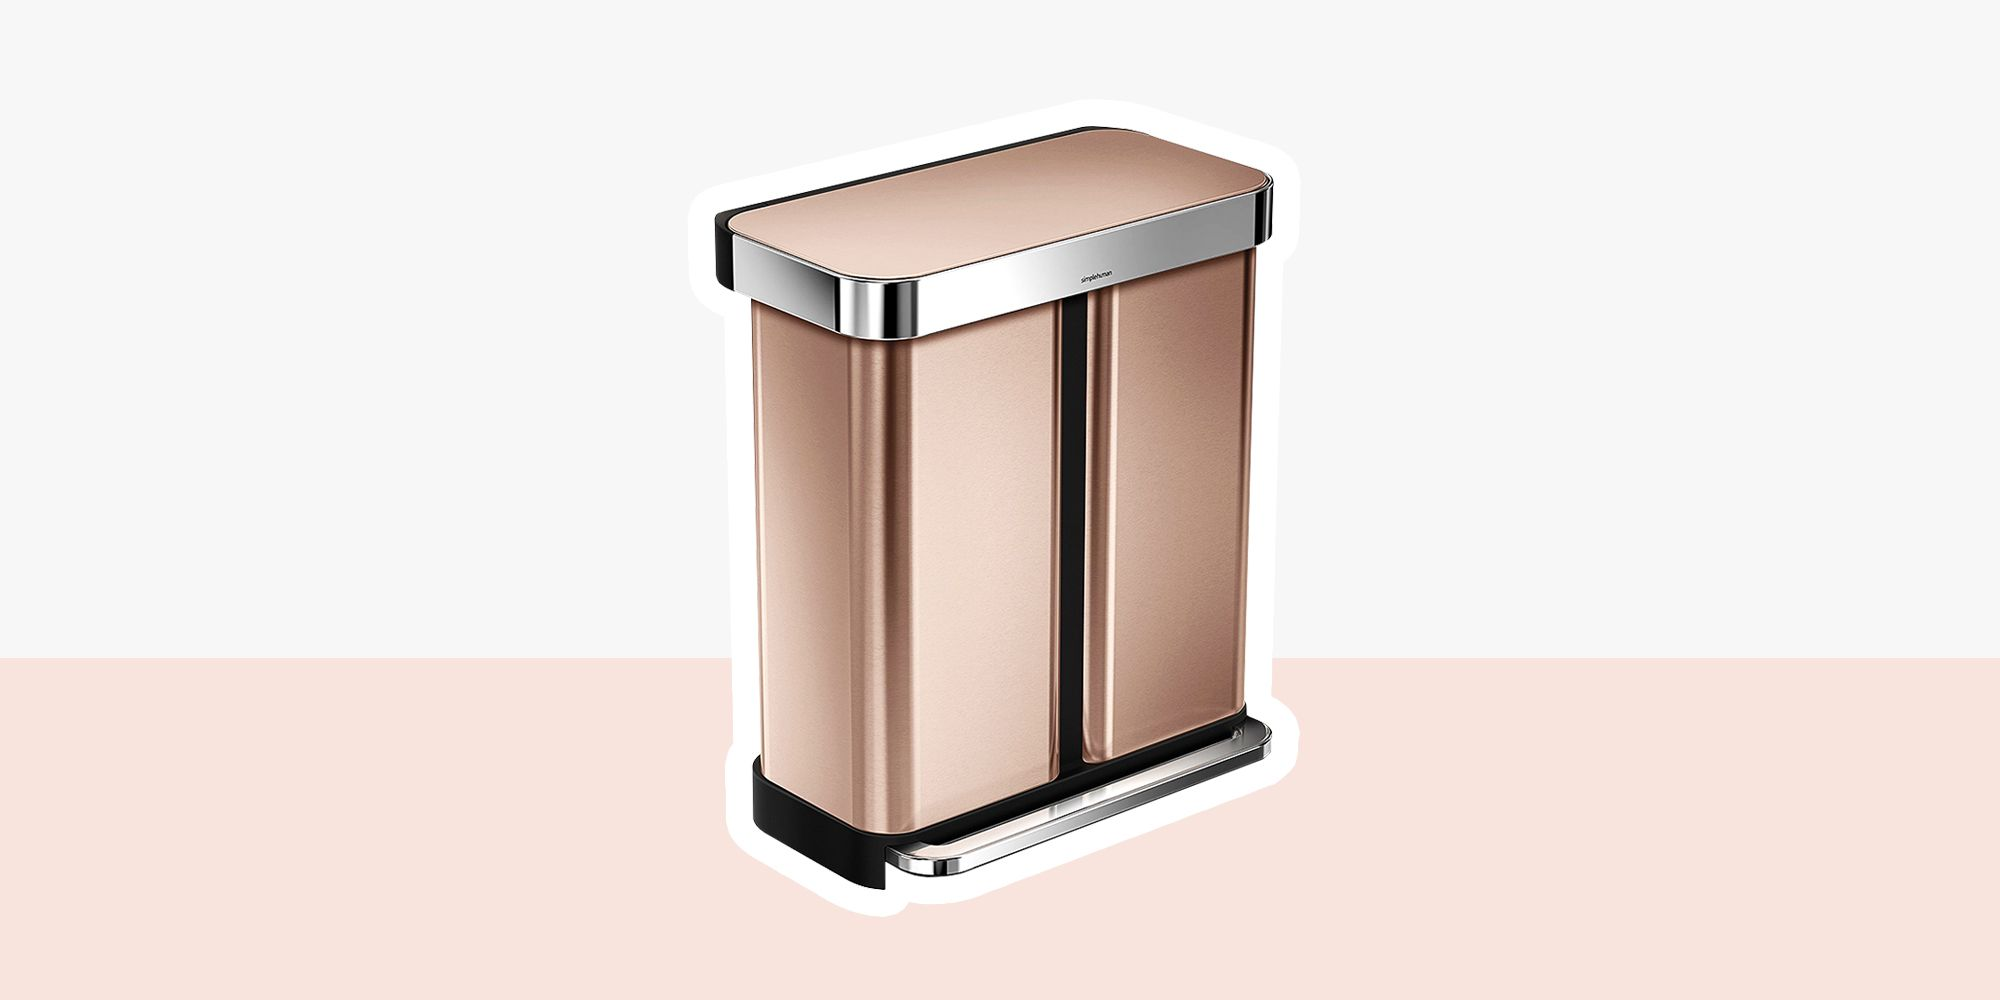 13 Cheap Stainless Steel Trash Cans 2018 - Best Stainless Garbage Cans